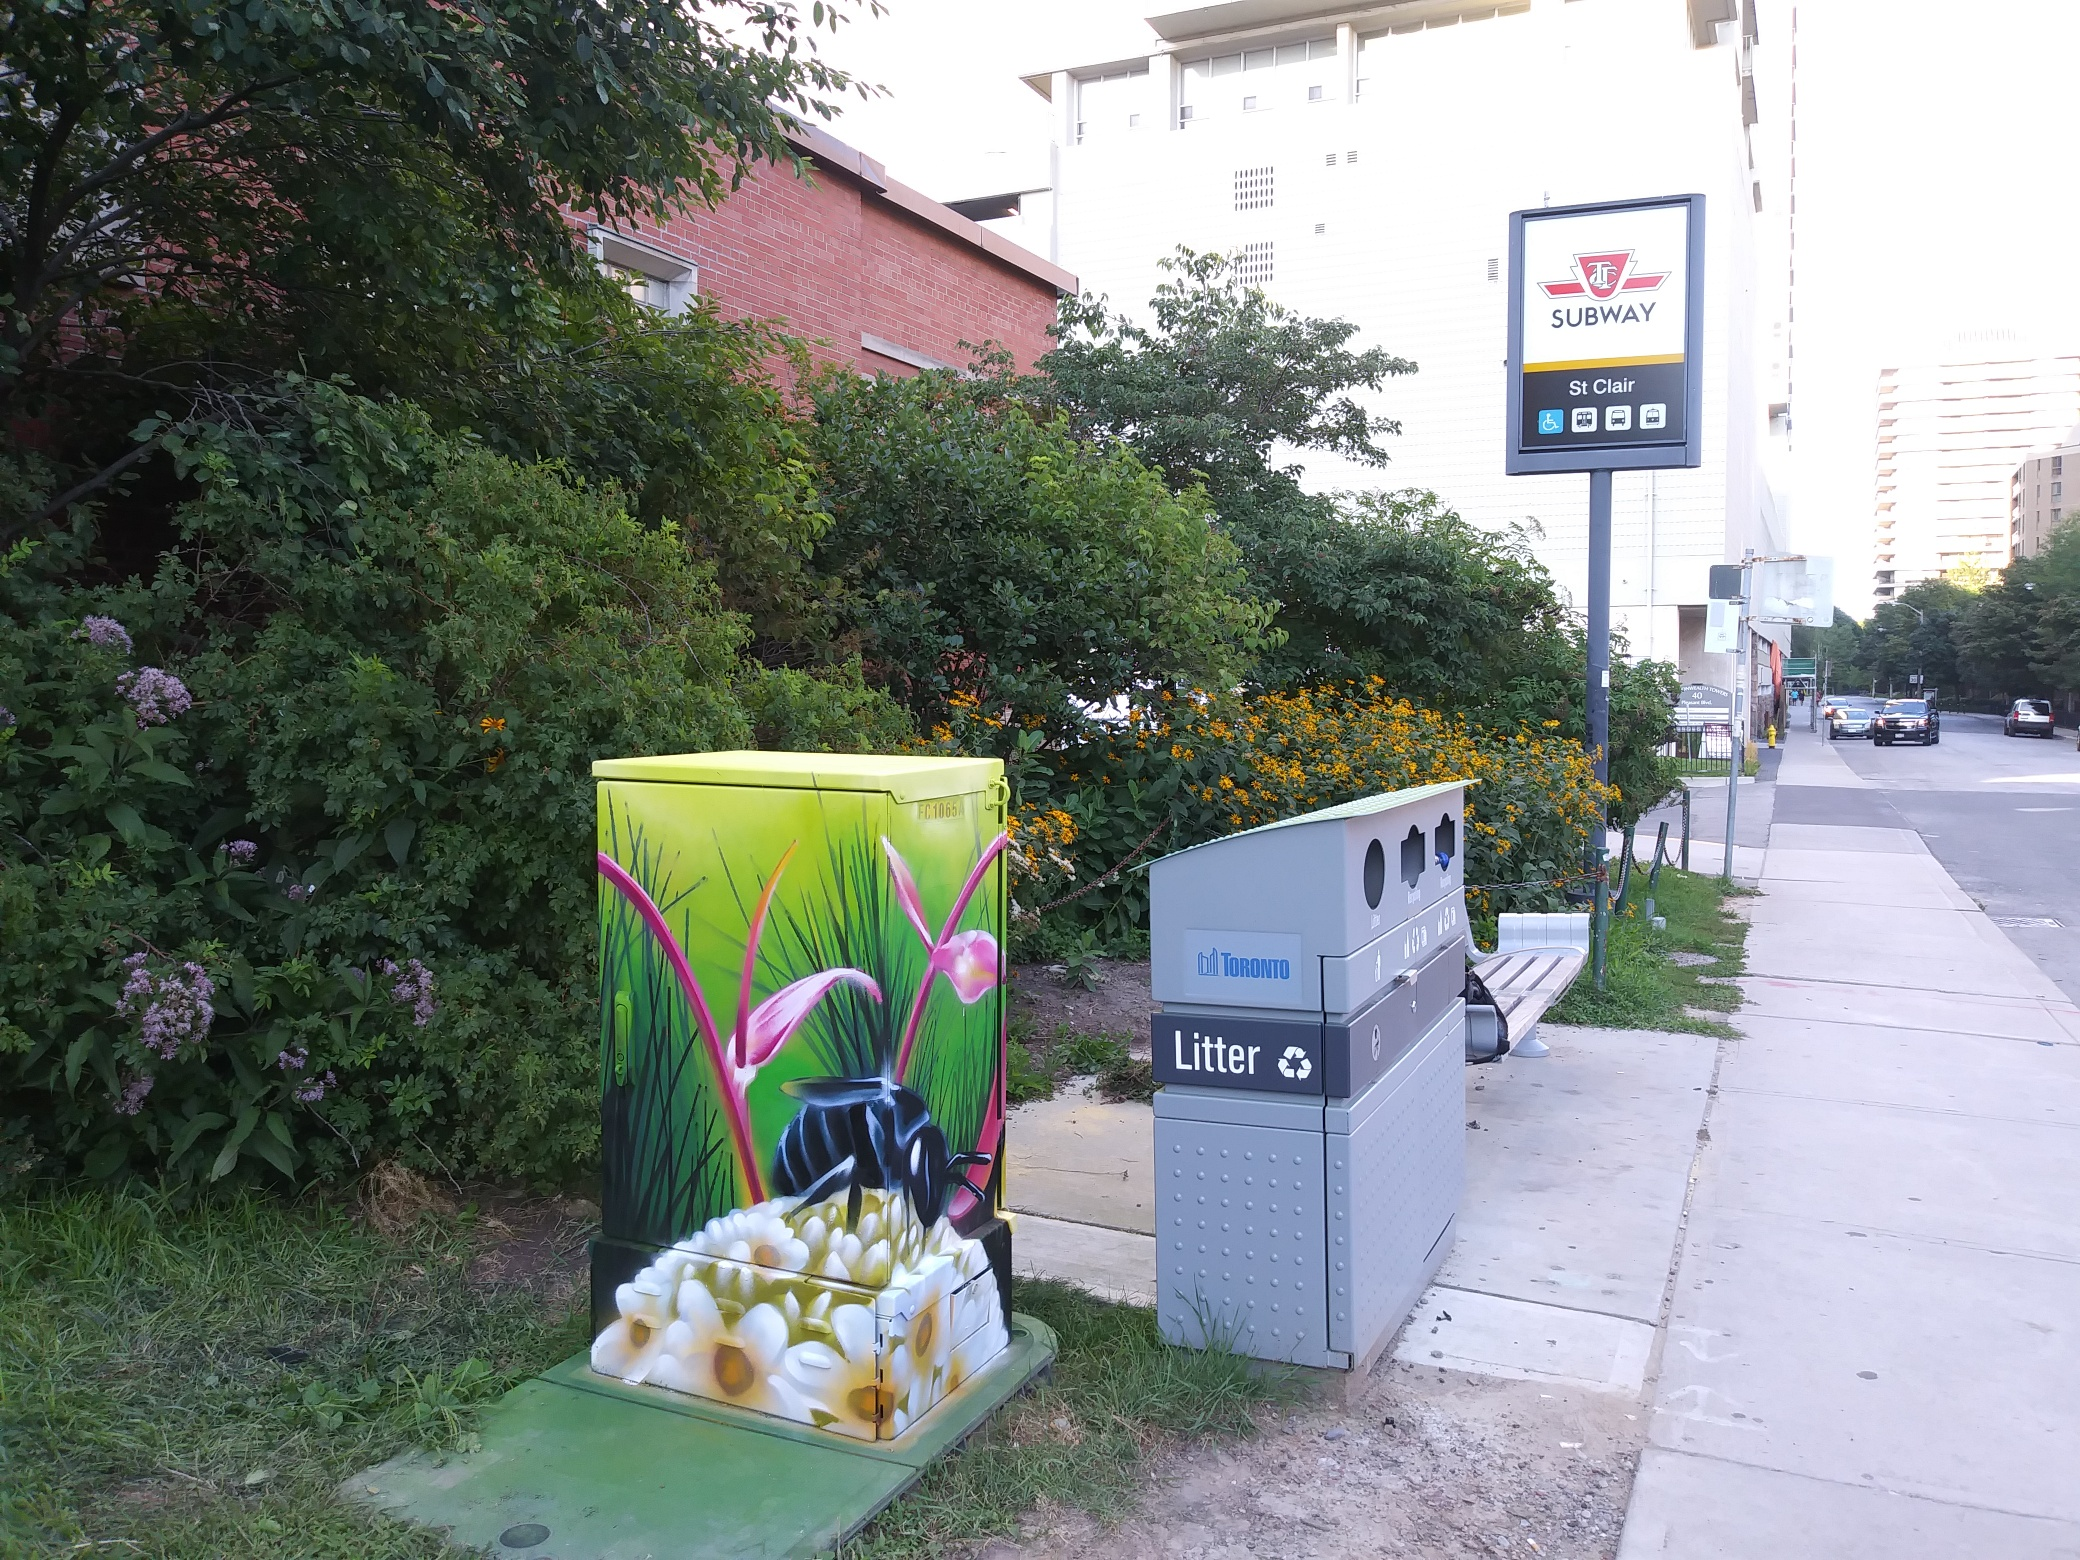 A mural on the Bell box near our St.Clair Garden highlighting local biodiversity and pollinator populations